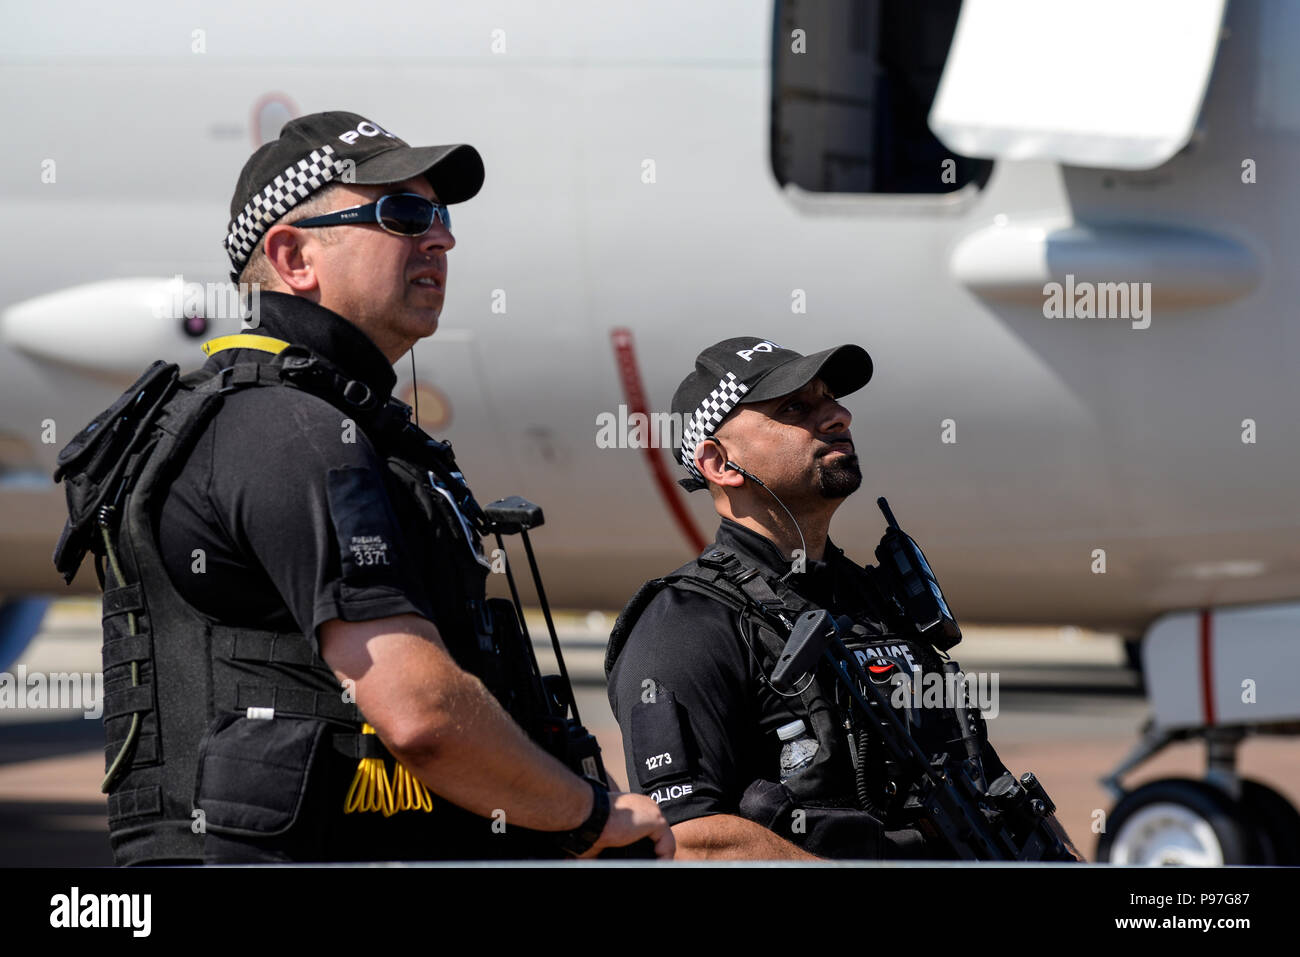 Royal International Air Tattoo, RIAT 2018, RAF Fairford. Armed police watch the flying display at the airshow - Stock Image